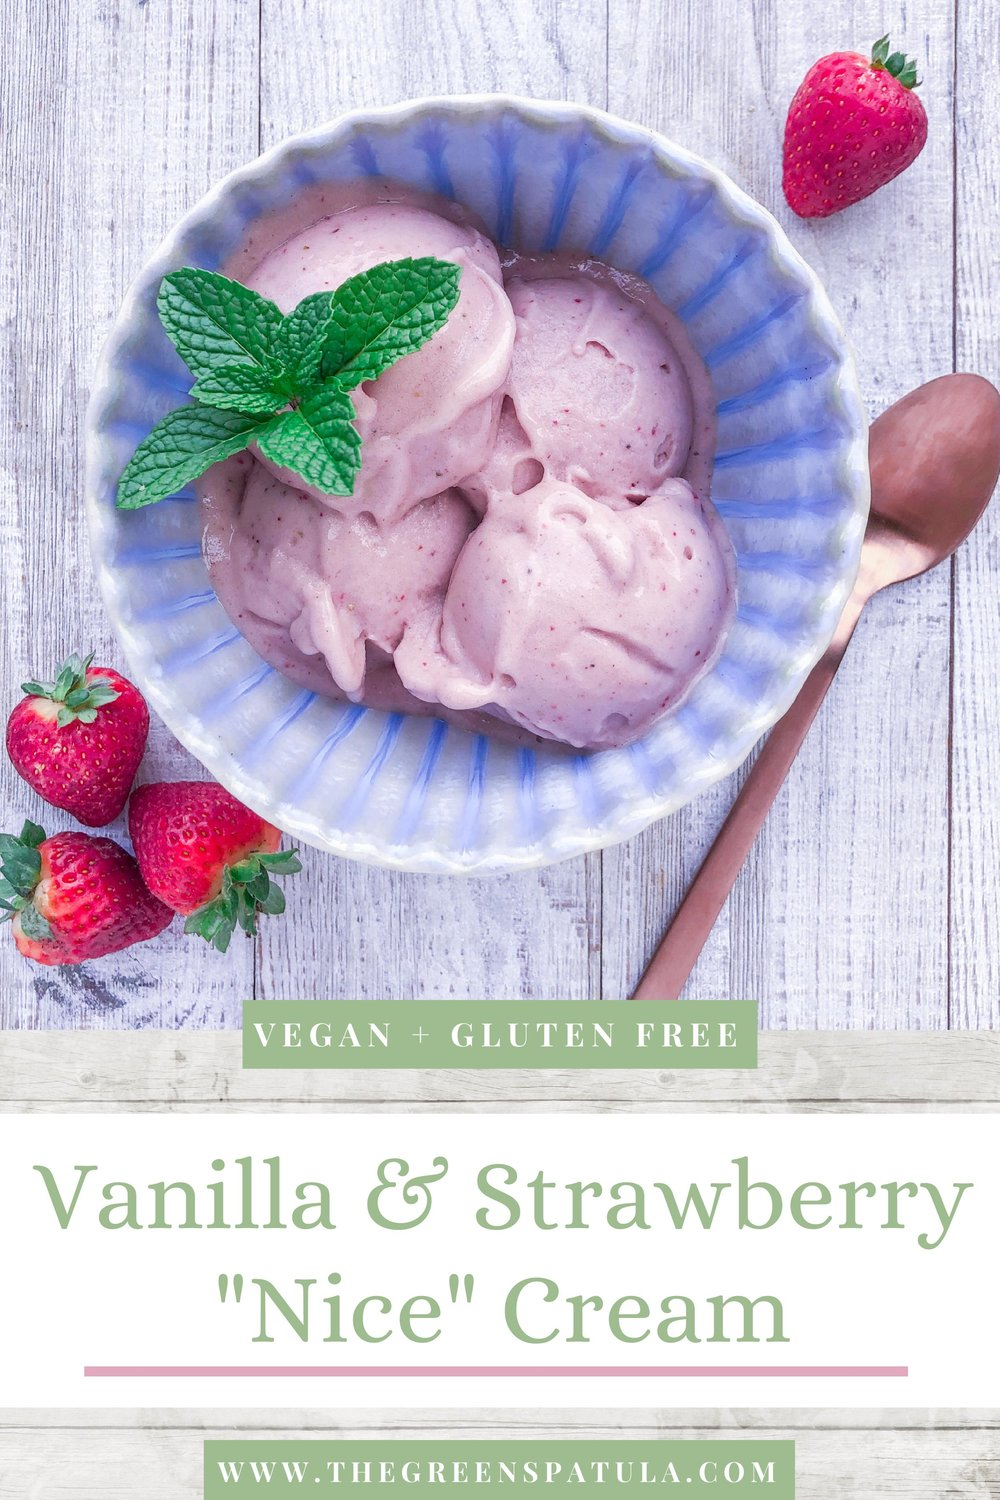 """Vanilla & Strawberry Nice Cream: This vegan ice cream is made in under 10 minutes (no need for an ice cream maker), sugar-free, and absolutely delicious. Not the biggest fan of banana? Once you add your """"flavors"""" like other frozen fruit or protein powder, the banana taste will minimize. Easily customize this recipe to create your favorite ice cream flavors. #plantbased #mealprep #protein #cleaneating #healthydessert #dessert #vegan #oilfree #glutenfree #breakfast #icecream #nicecream"""